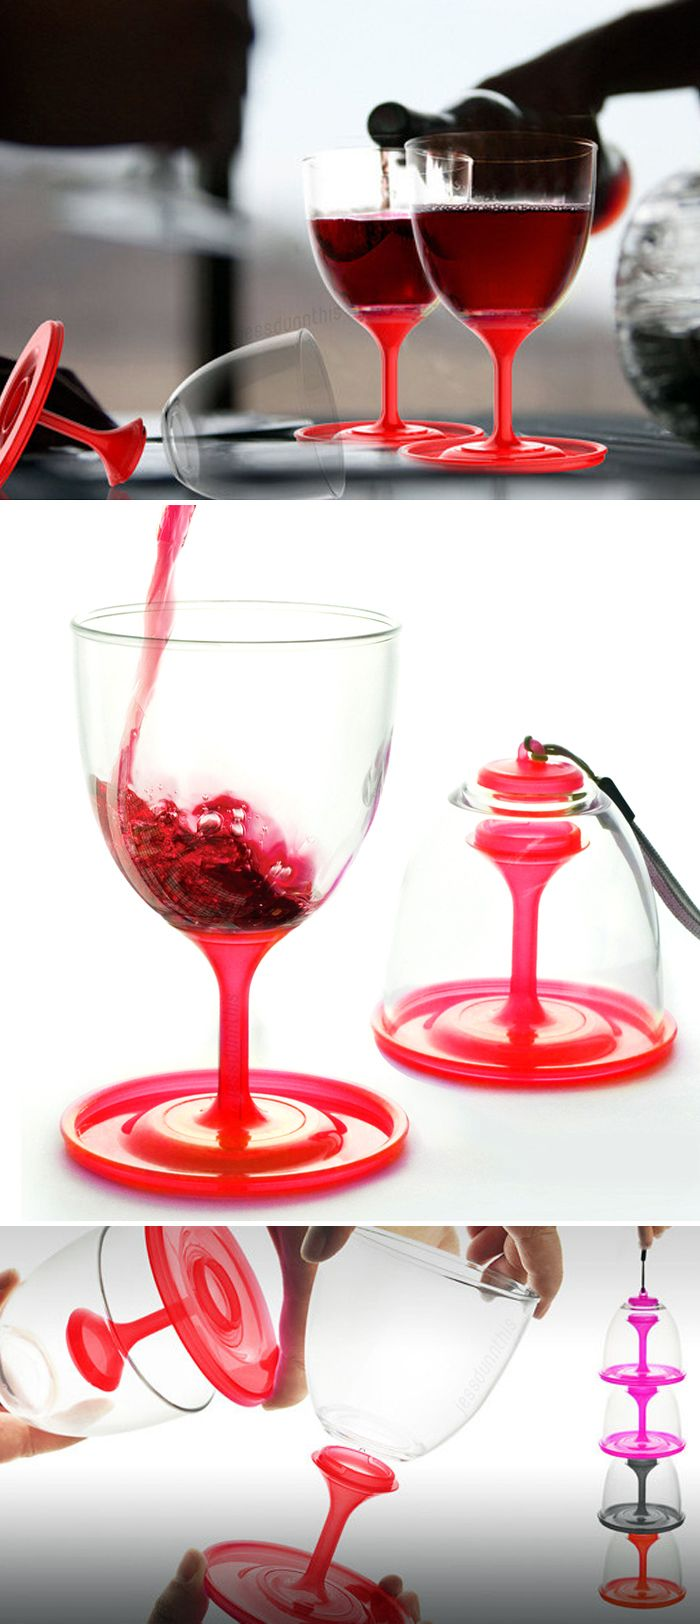 Stack N Go Travel Wine Glass Folds Up And Stacks For Easy Storage And Carrying Brilliant Product Design Wine Glass Set Plastic Wine Glasses Wine Glass